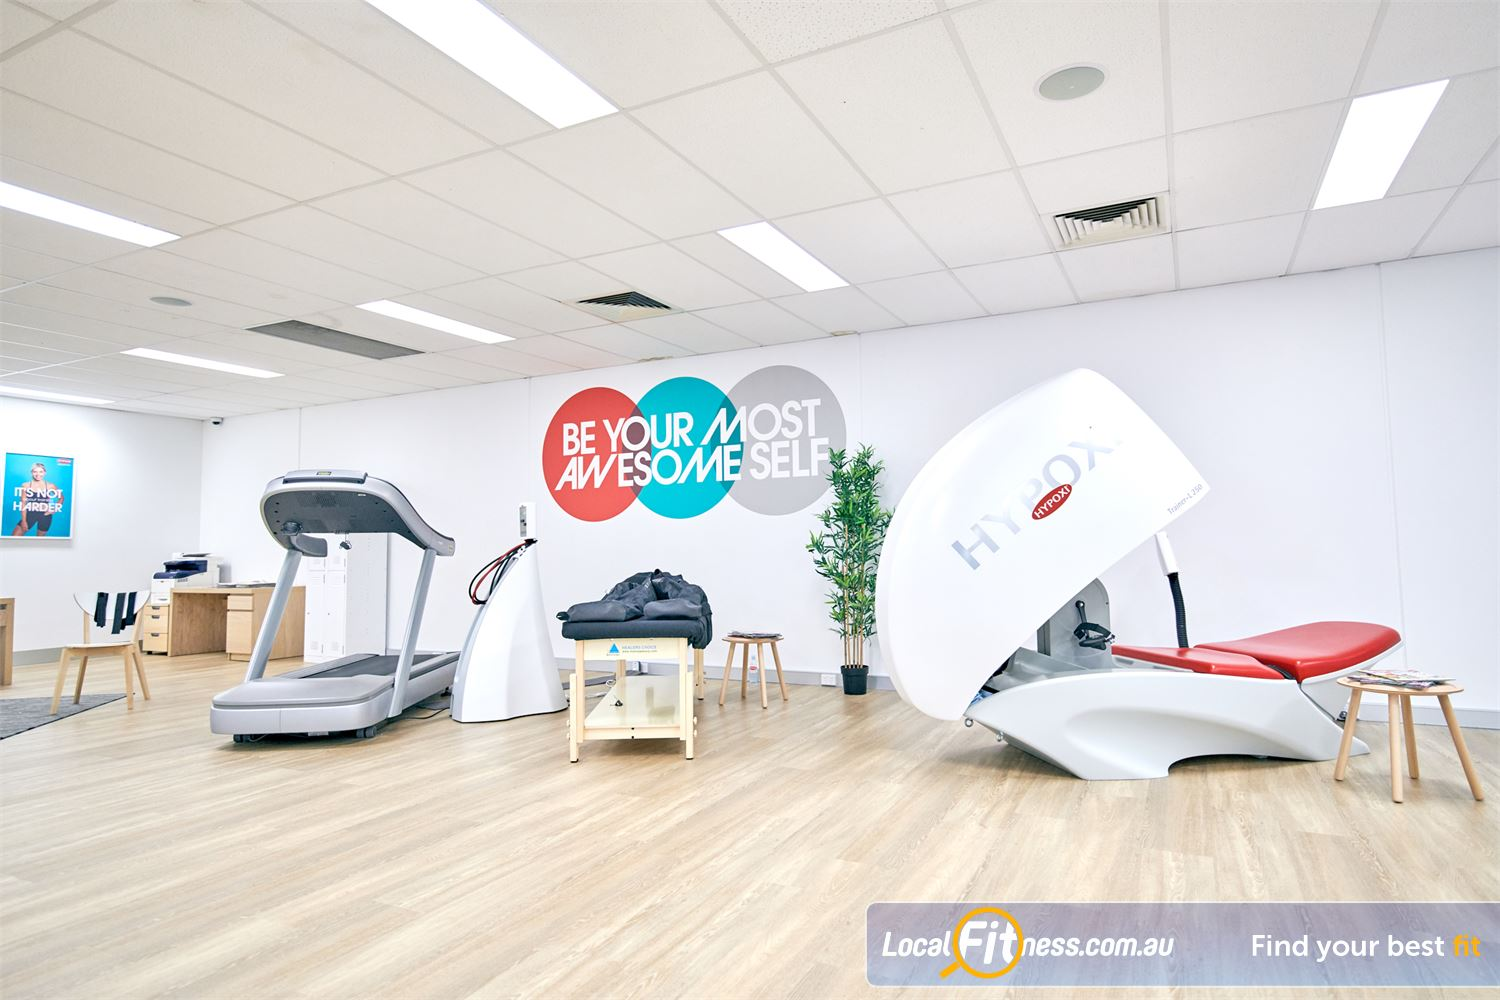 HYPOXI Weight Loss Near Wangara Our advanced technology provides targeted fat loss in Madeley.